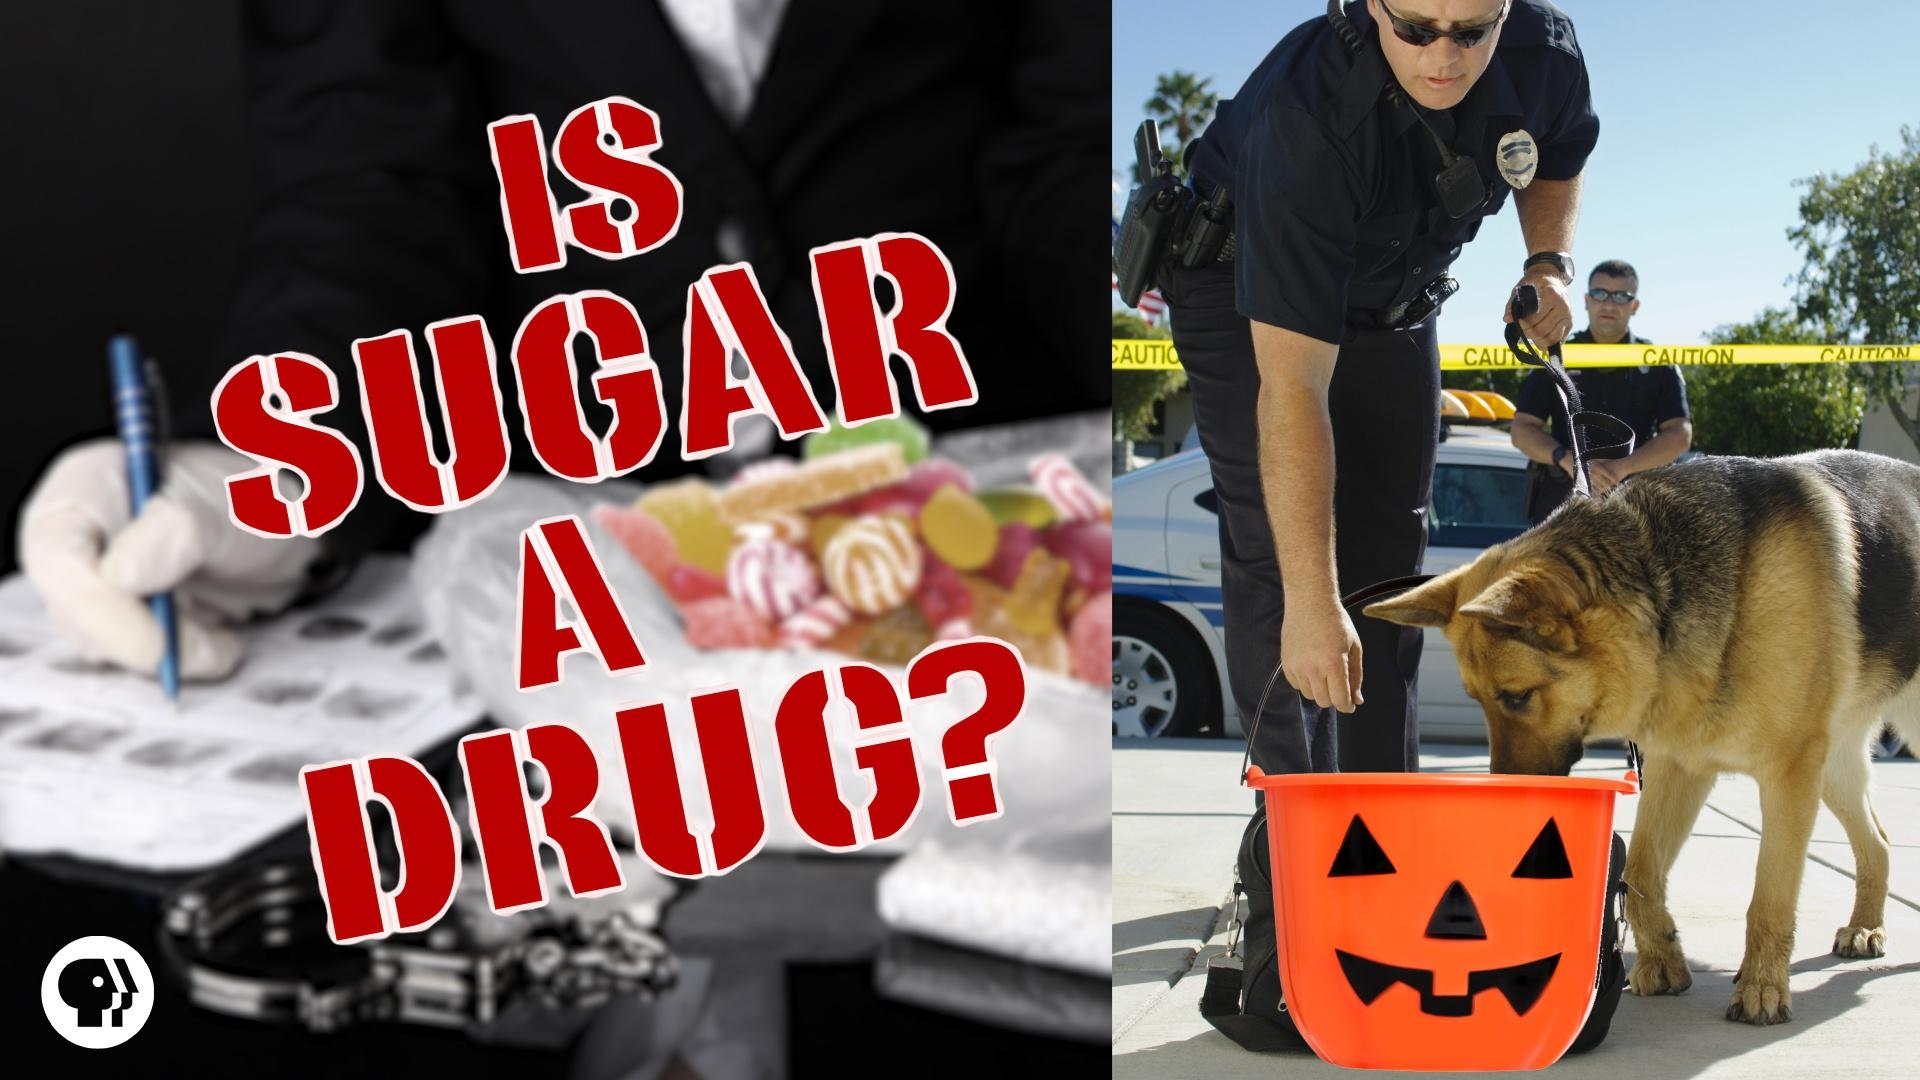 is tv a drug Sugar is a drug it's unfortunately it does seem a little extreme to label a food as a drug but wwwbodyecologycom/articles & wwwfoodmatterstv.